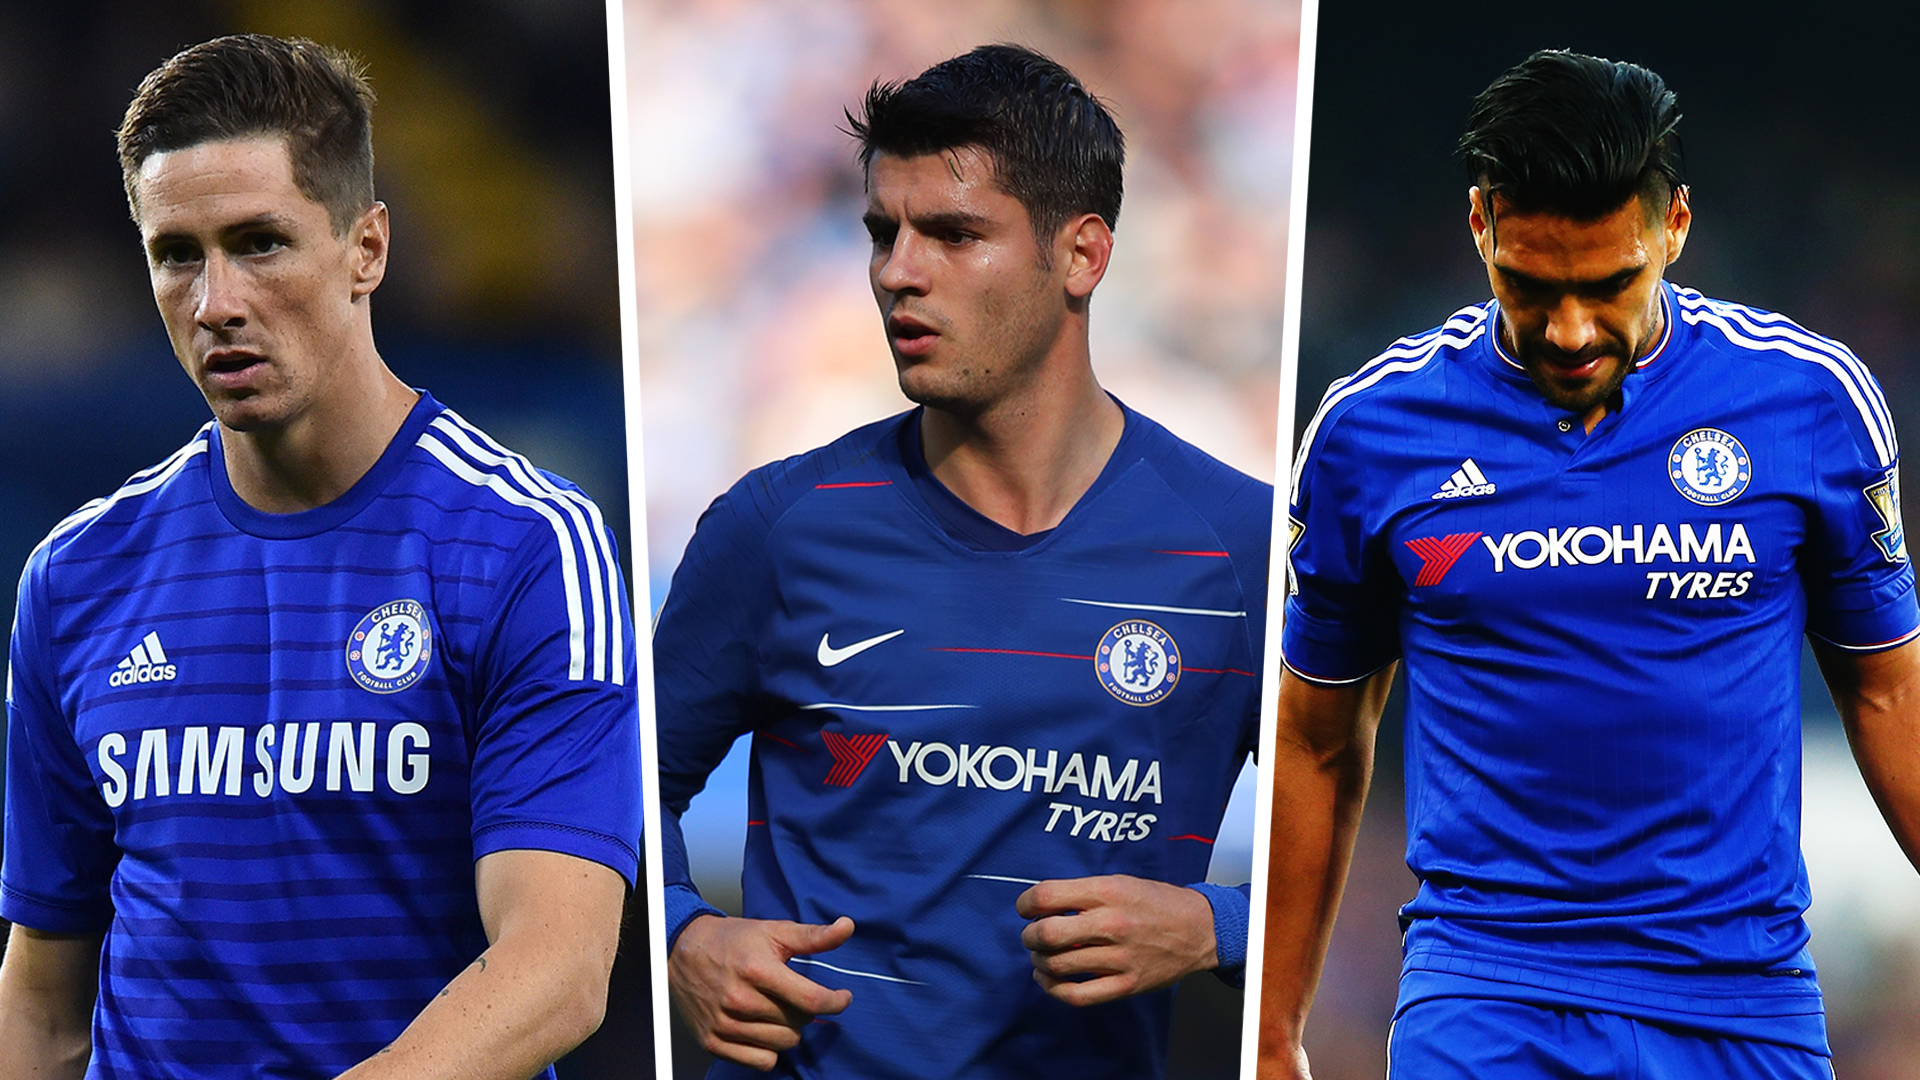 Chelsea collapse to 4-0 defeat at Bournemouth, Football News & Top Stories